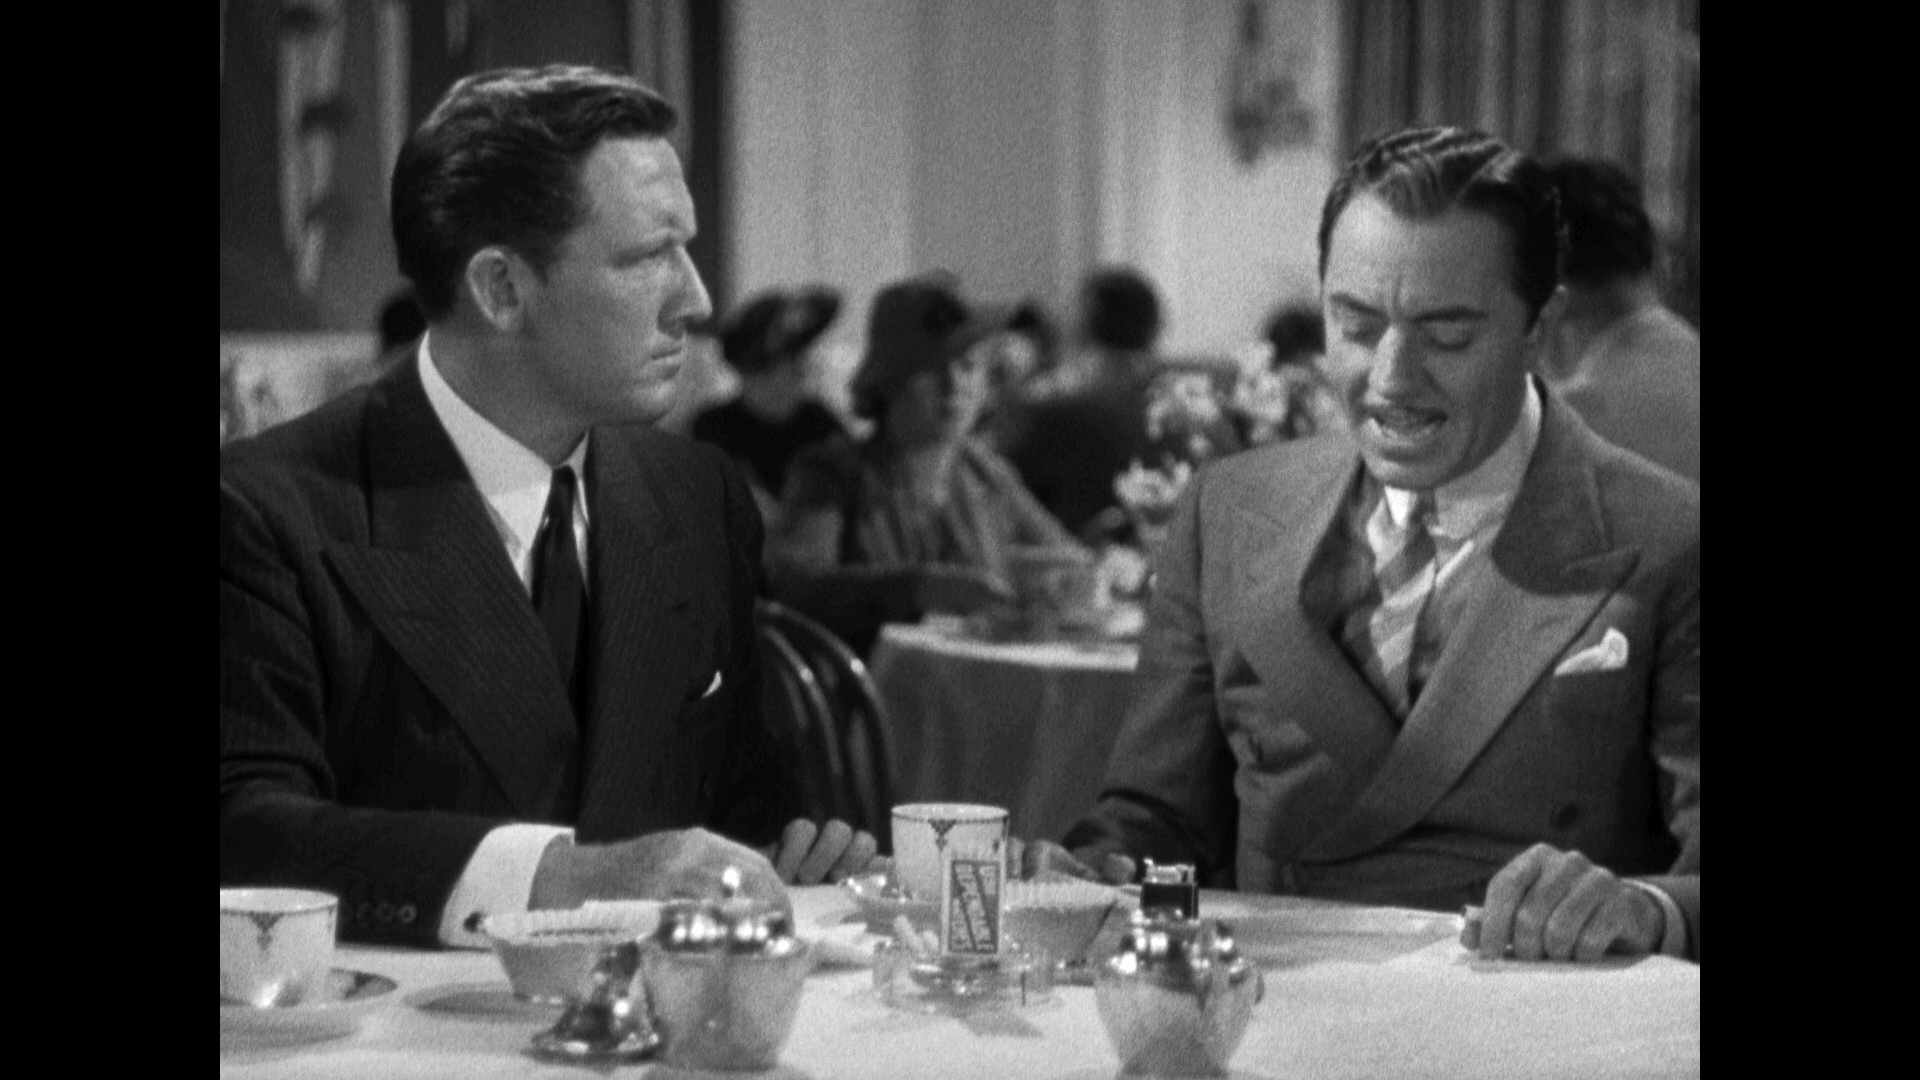 Libeled Lady (1936) [Warner Archive Blu-ray review] 8